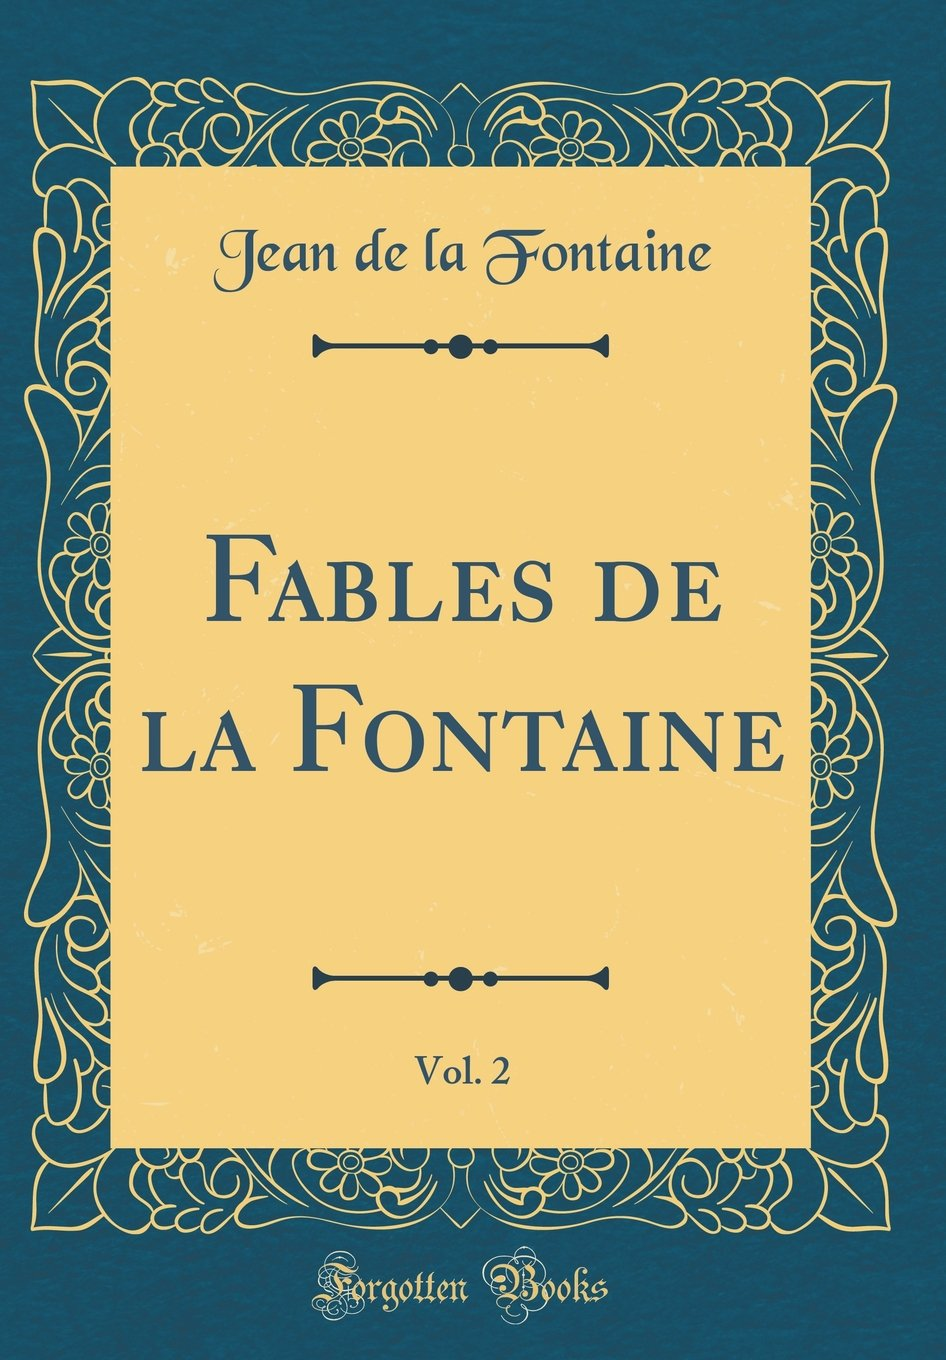 Fables de La Fontaine, Vol. 2 written by Jean de La Fontaine